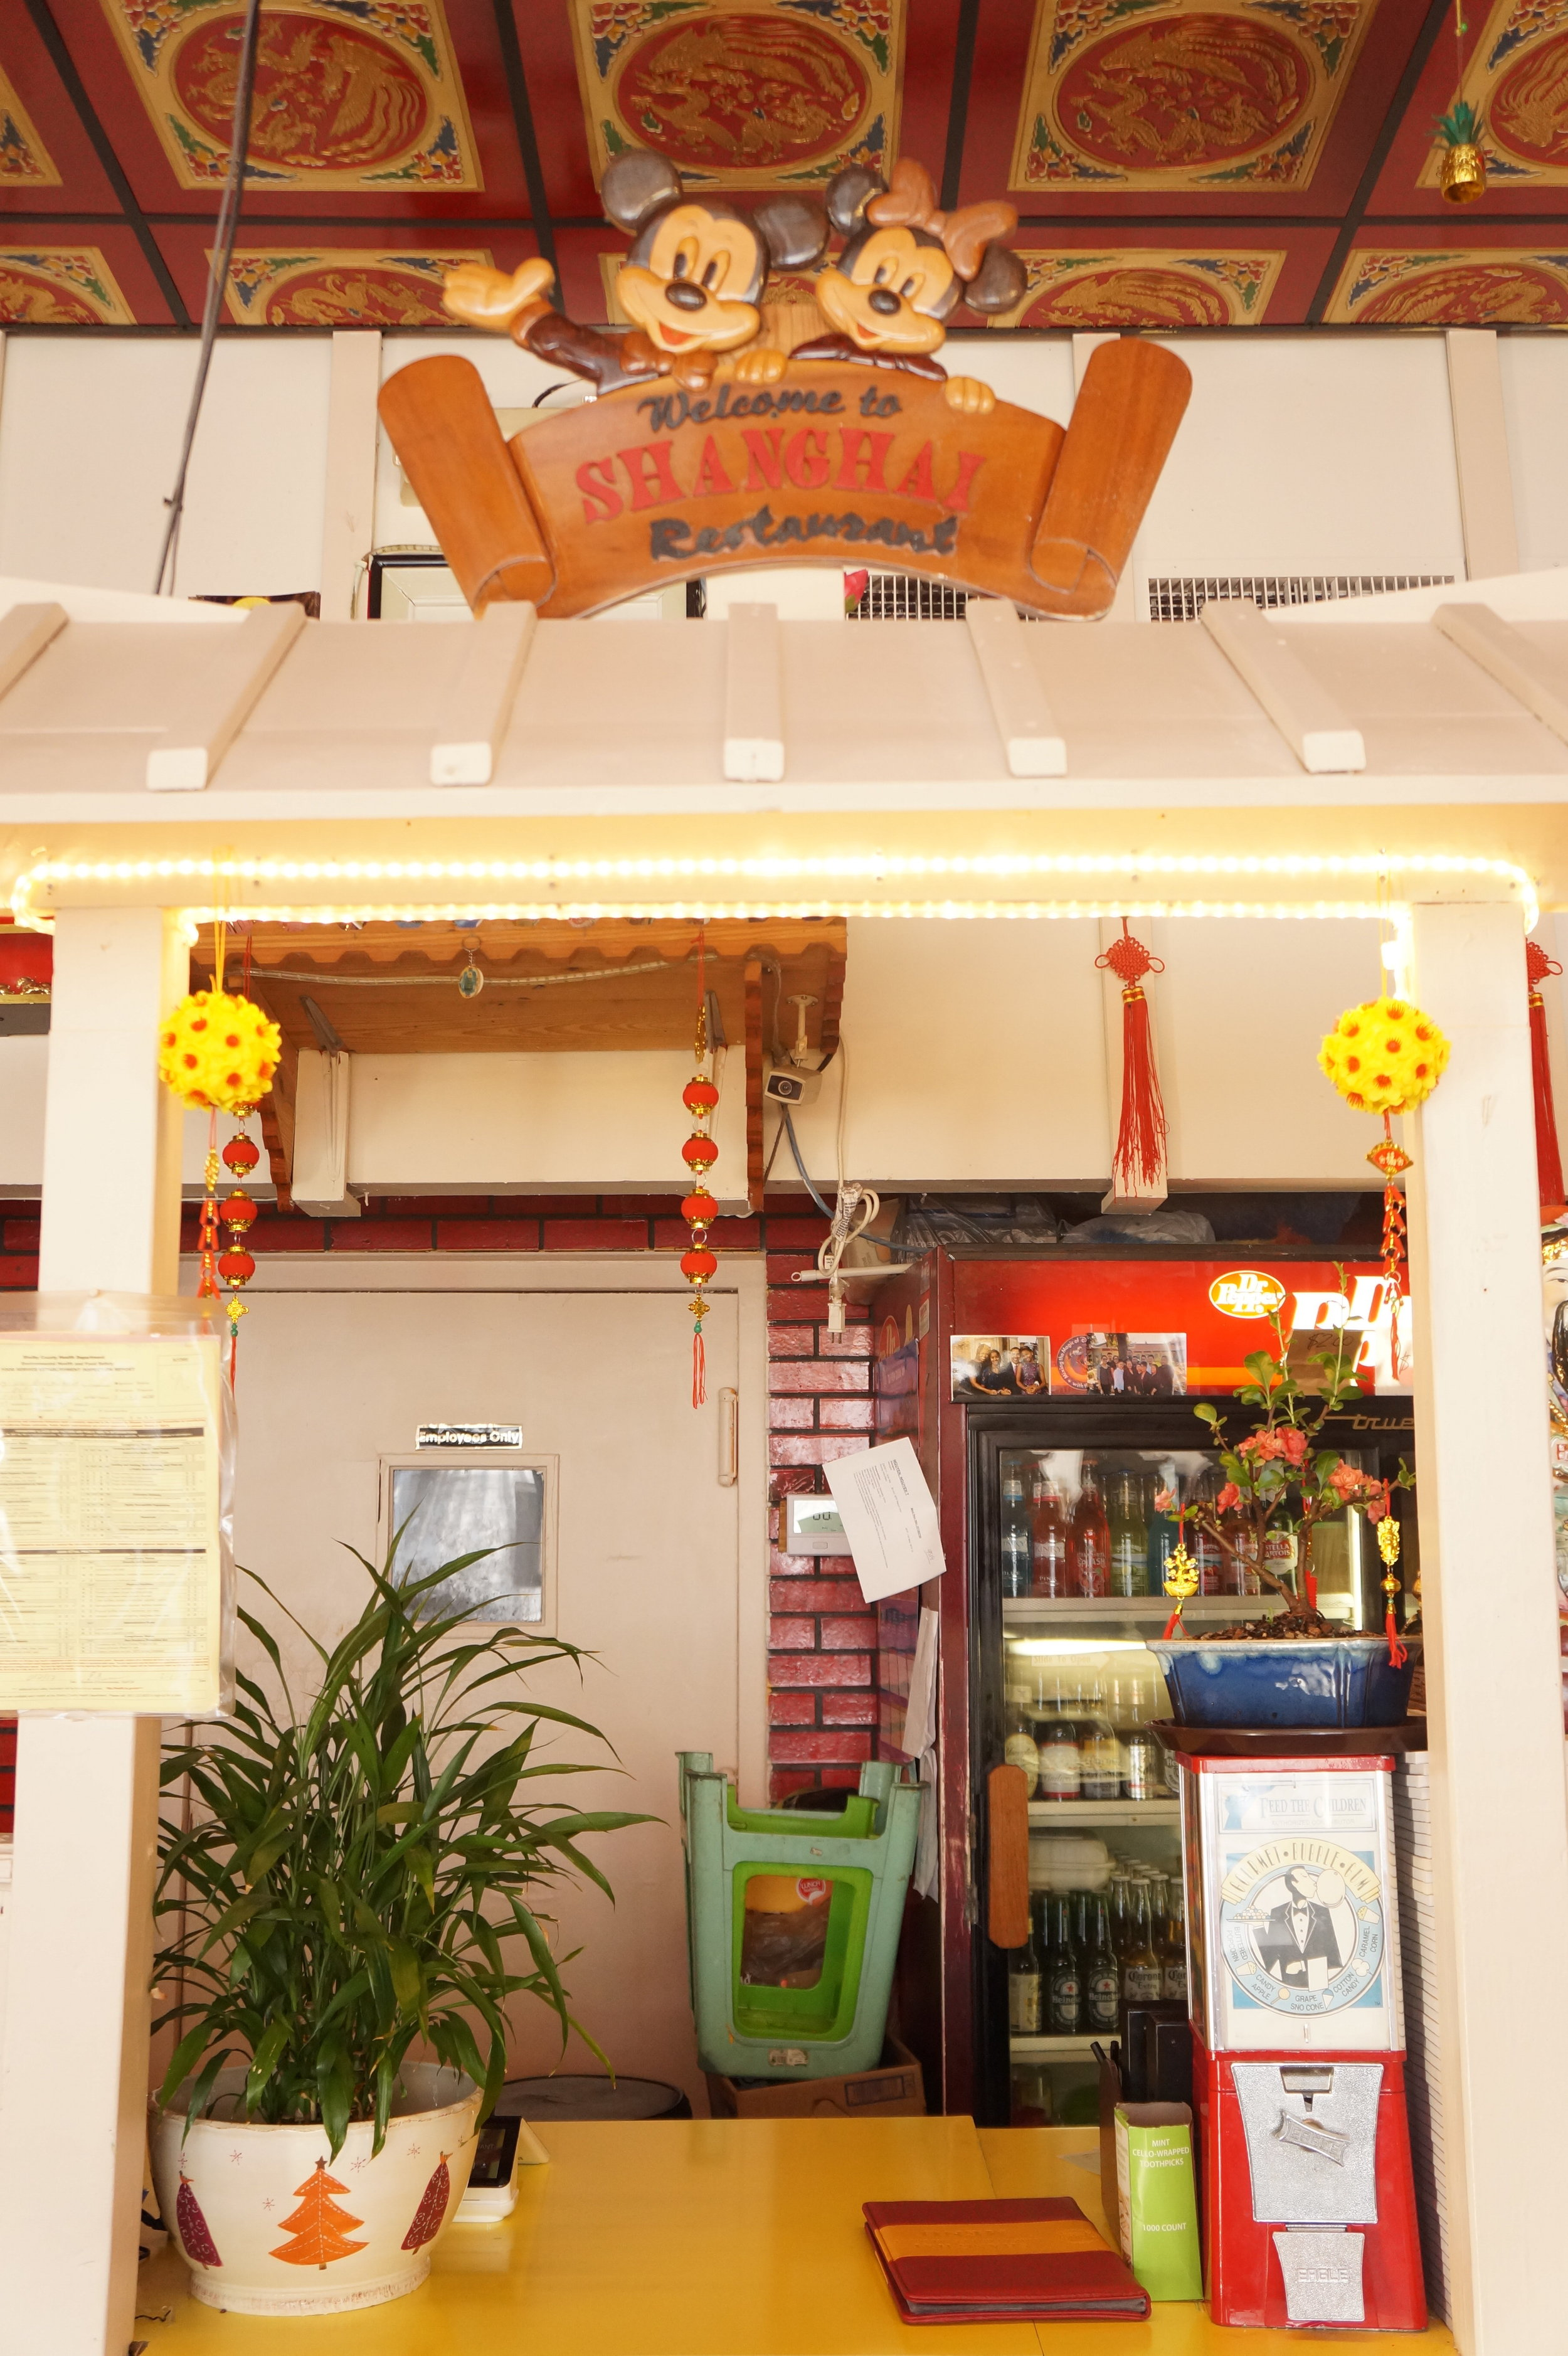 Andrea Fenise Memphis Fashion Blogger and Food Blogger features Shang Hai restaurant